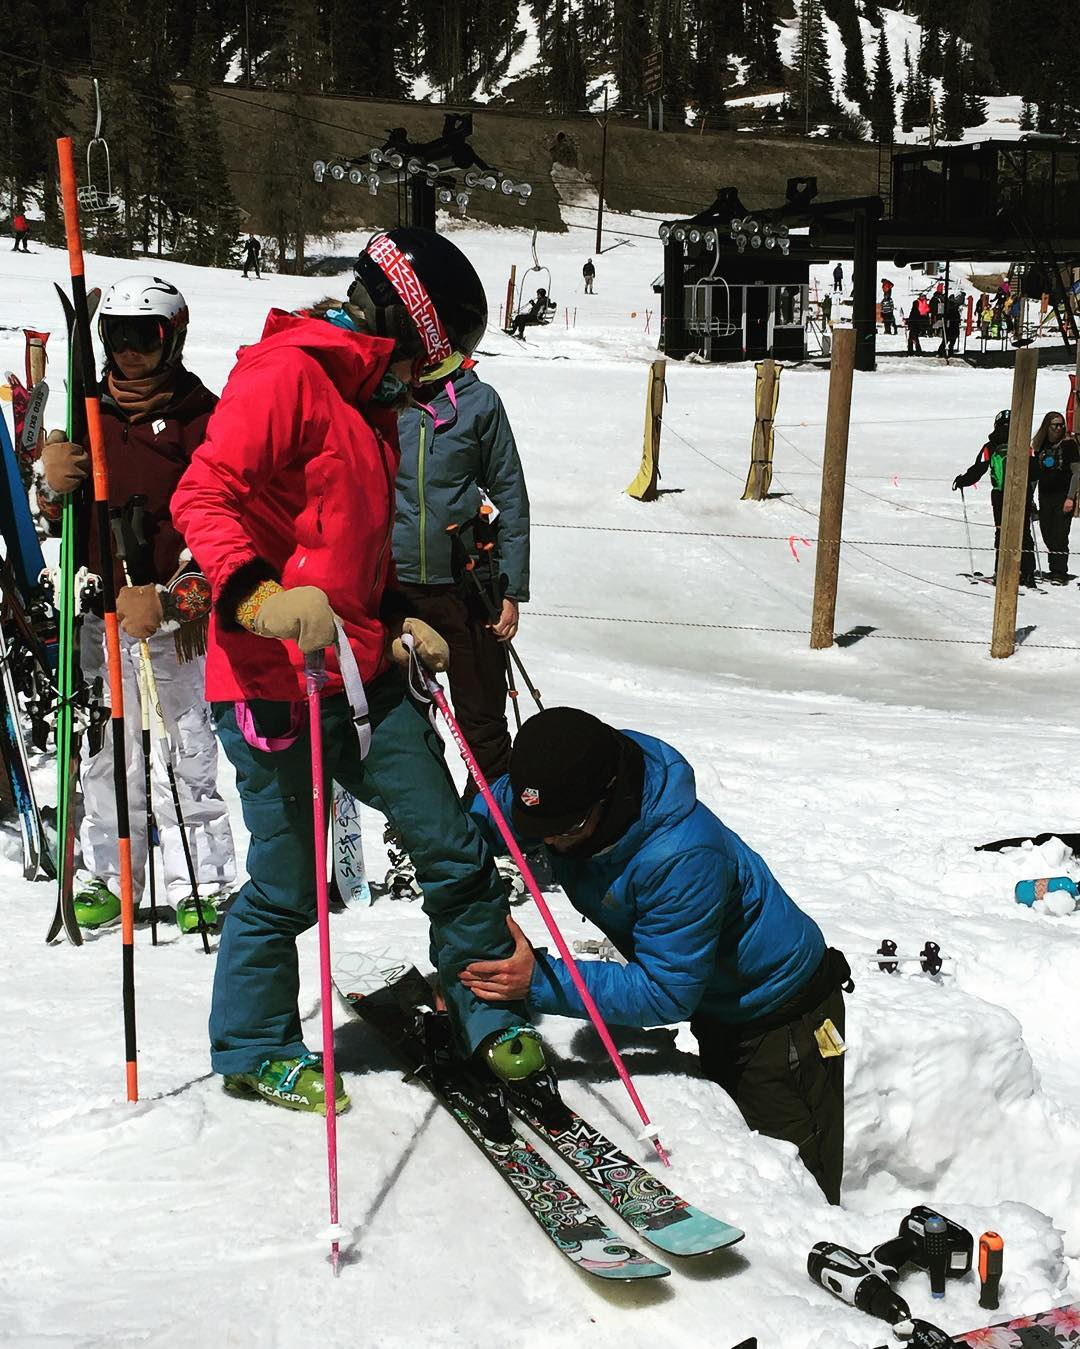 Snapshot from the @skiingmagazine #indietest2016  demo pit; hoping she loved the #bliss freestyle ski as much as we do!  #sisterhoodofshred #demos #skiing #colorado #fingerscrossed